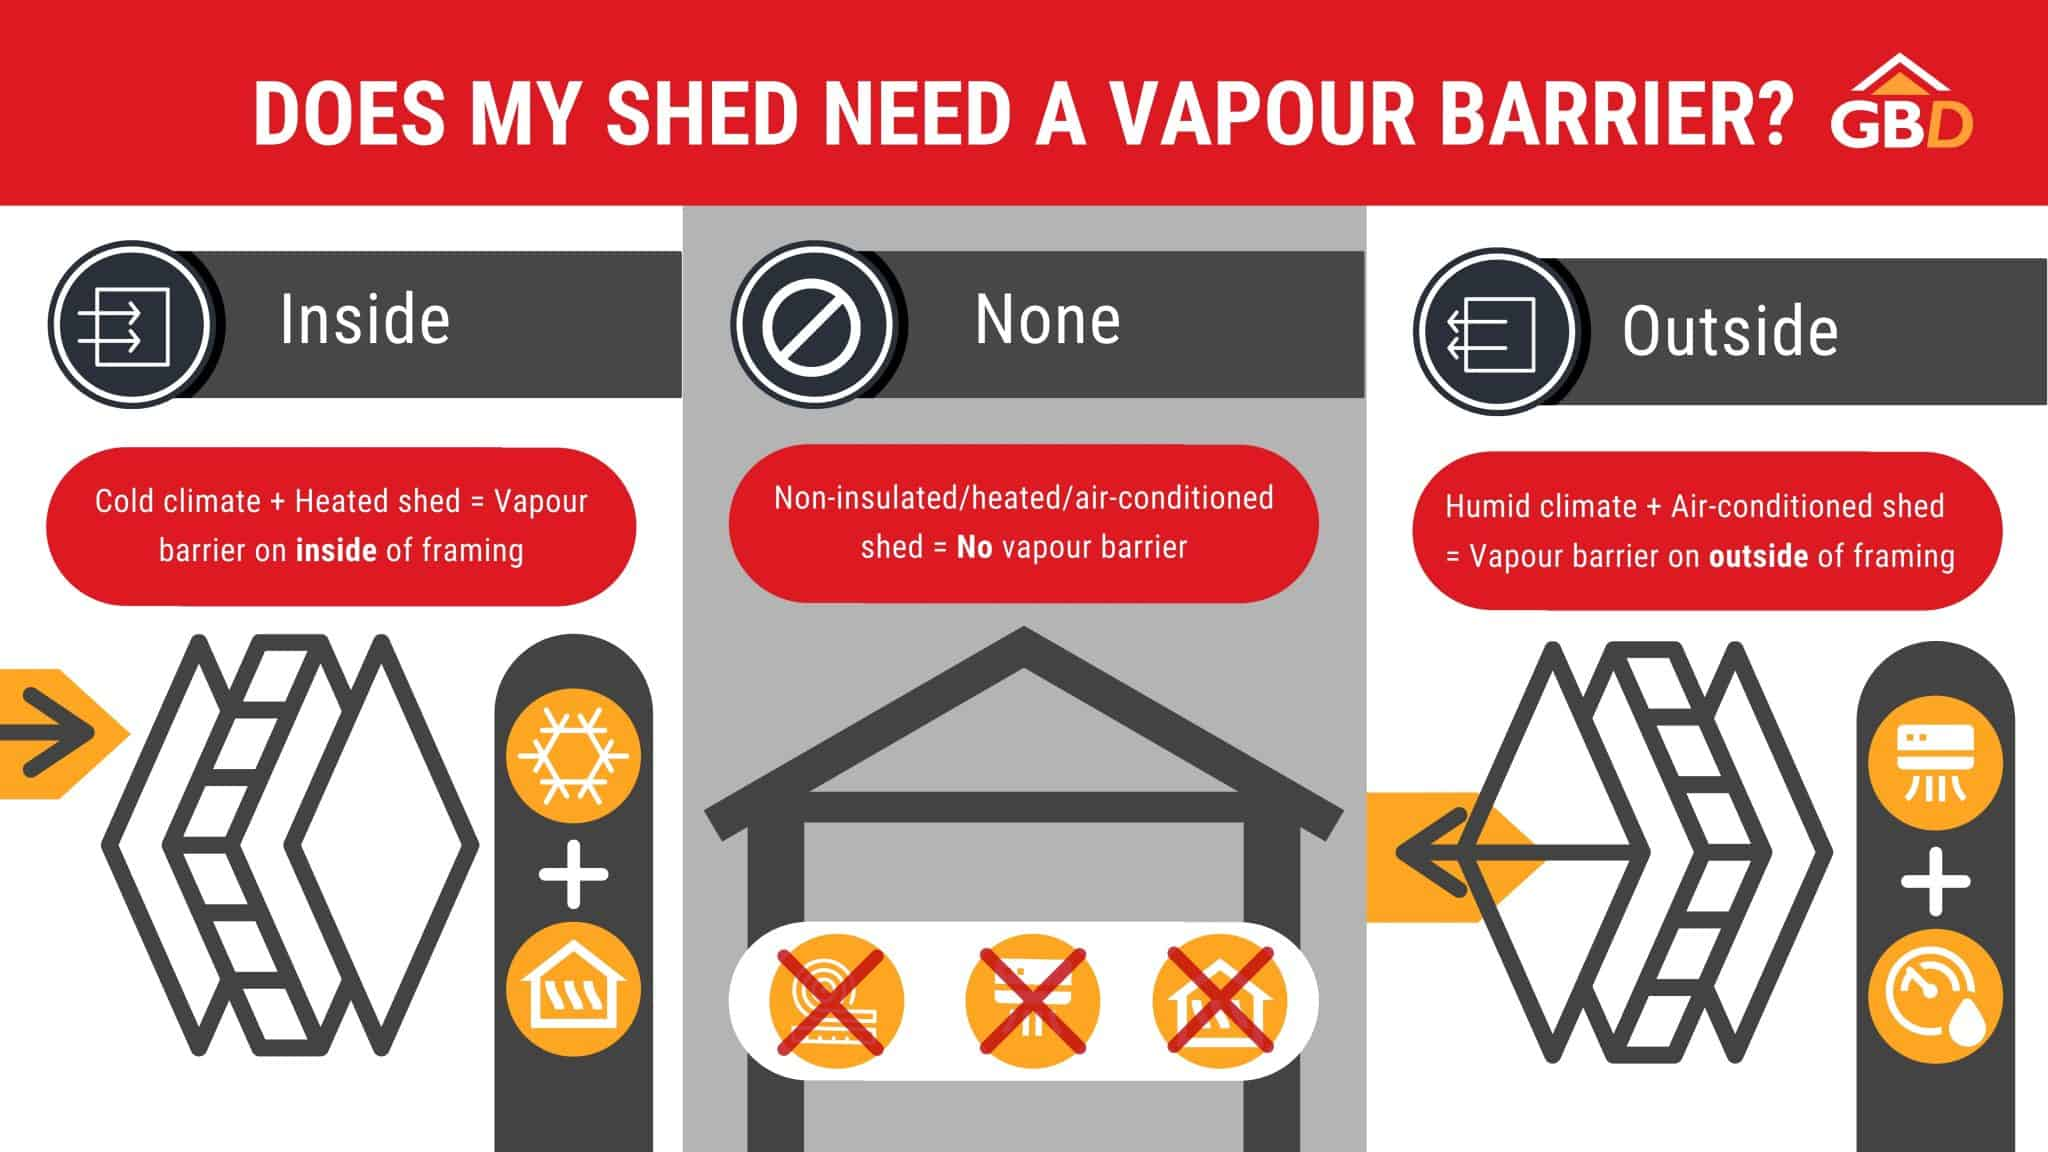 Vapour Barrier Infographic GBD